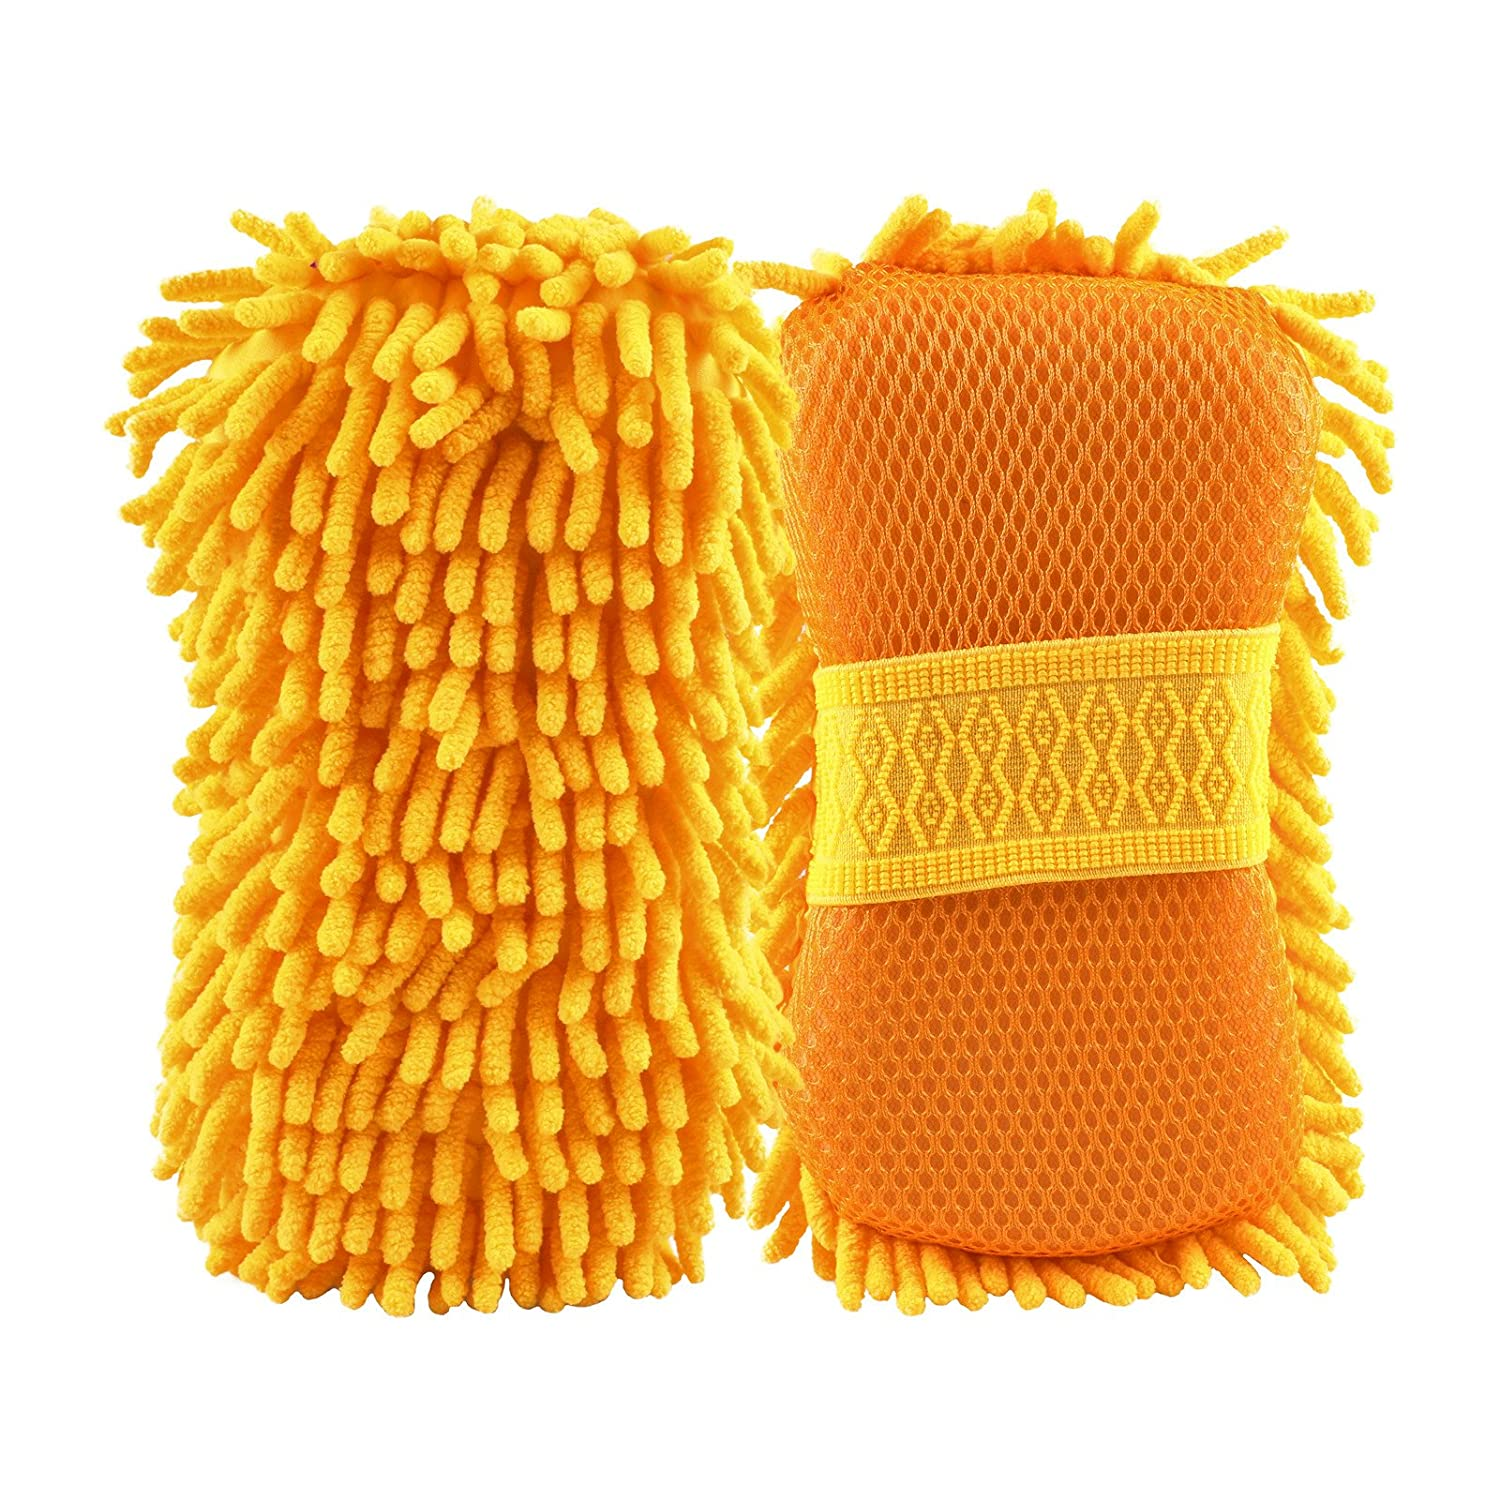 Car Wash Mitt Sponge Chenille Microfiber, GOGOLO Scratch-Free Dual-sided Wash Sponge Highly Absorbent with Handle Strap for Cleaning Auto Vehicle Window Furniture PU Leather Seat